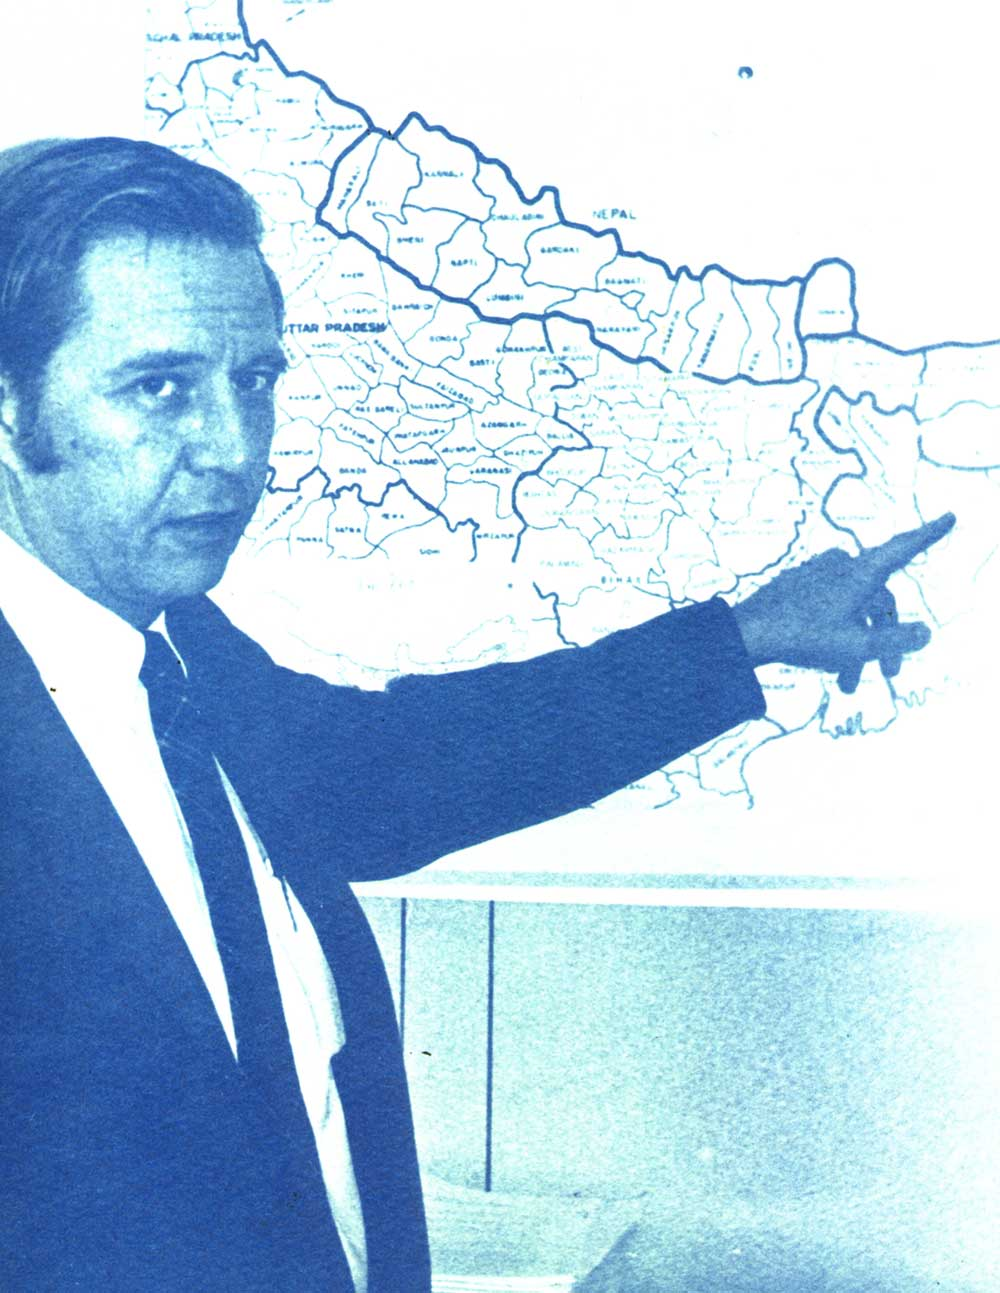 Photo of Dr. Donald A. Henderson from an America Public Health Association publication of 1975.